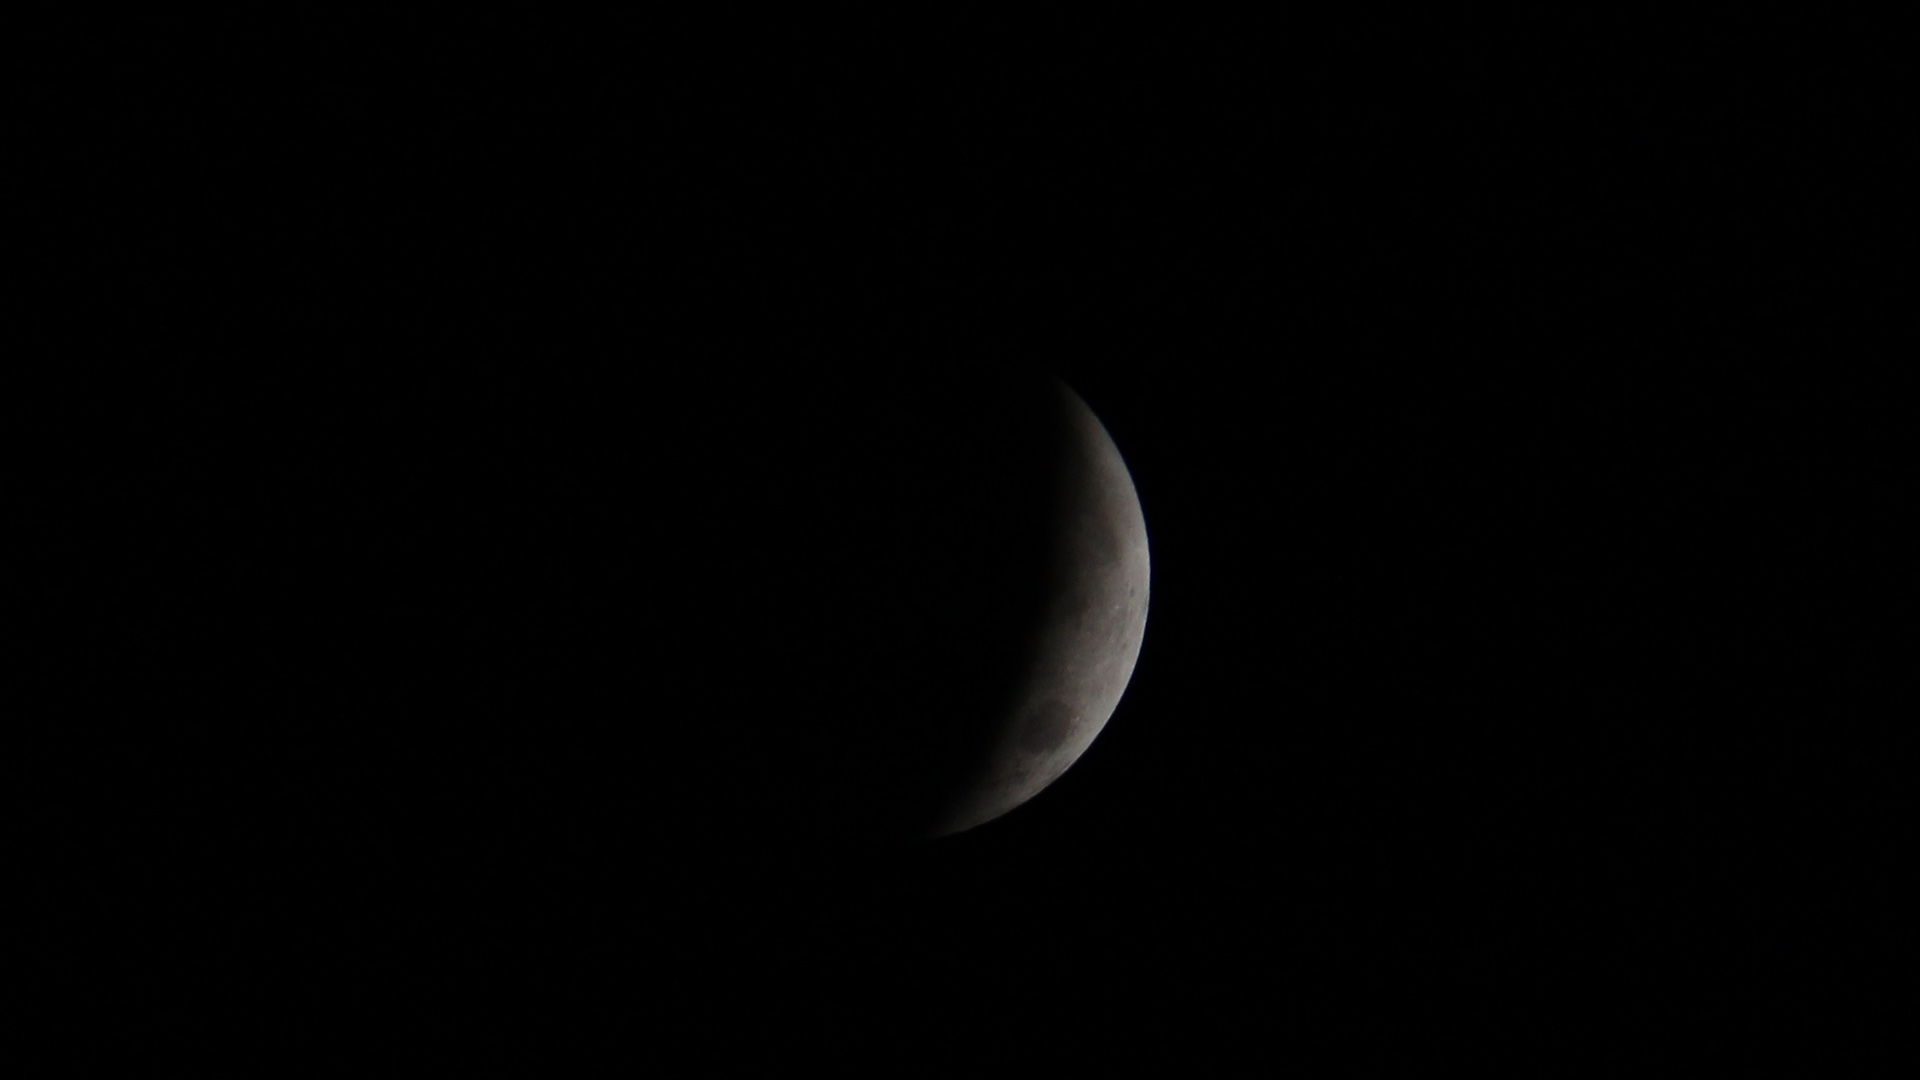 Lunar Eclipse 20141008 8